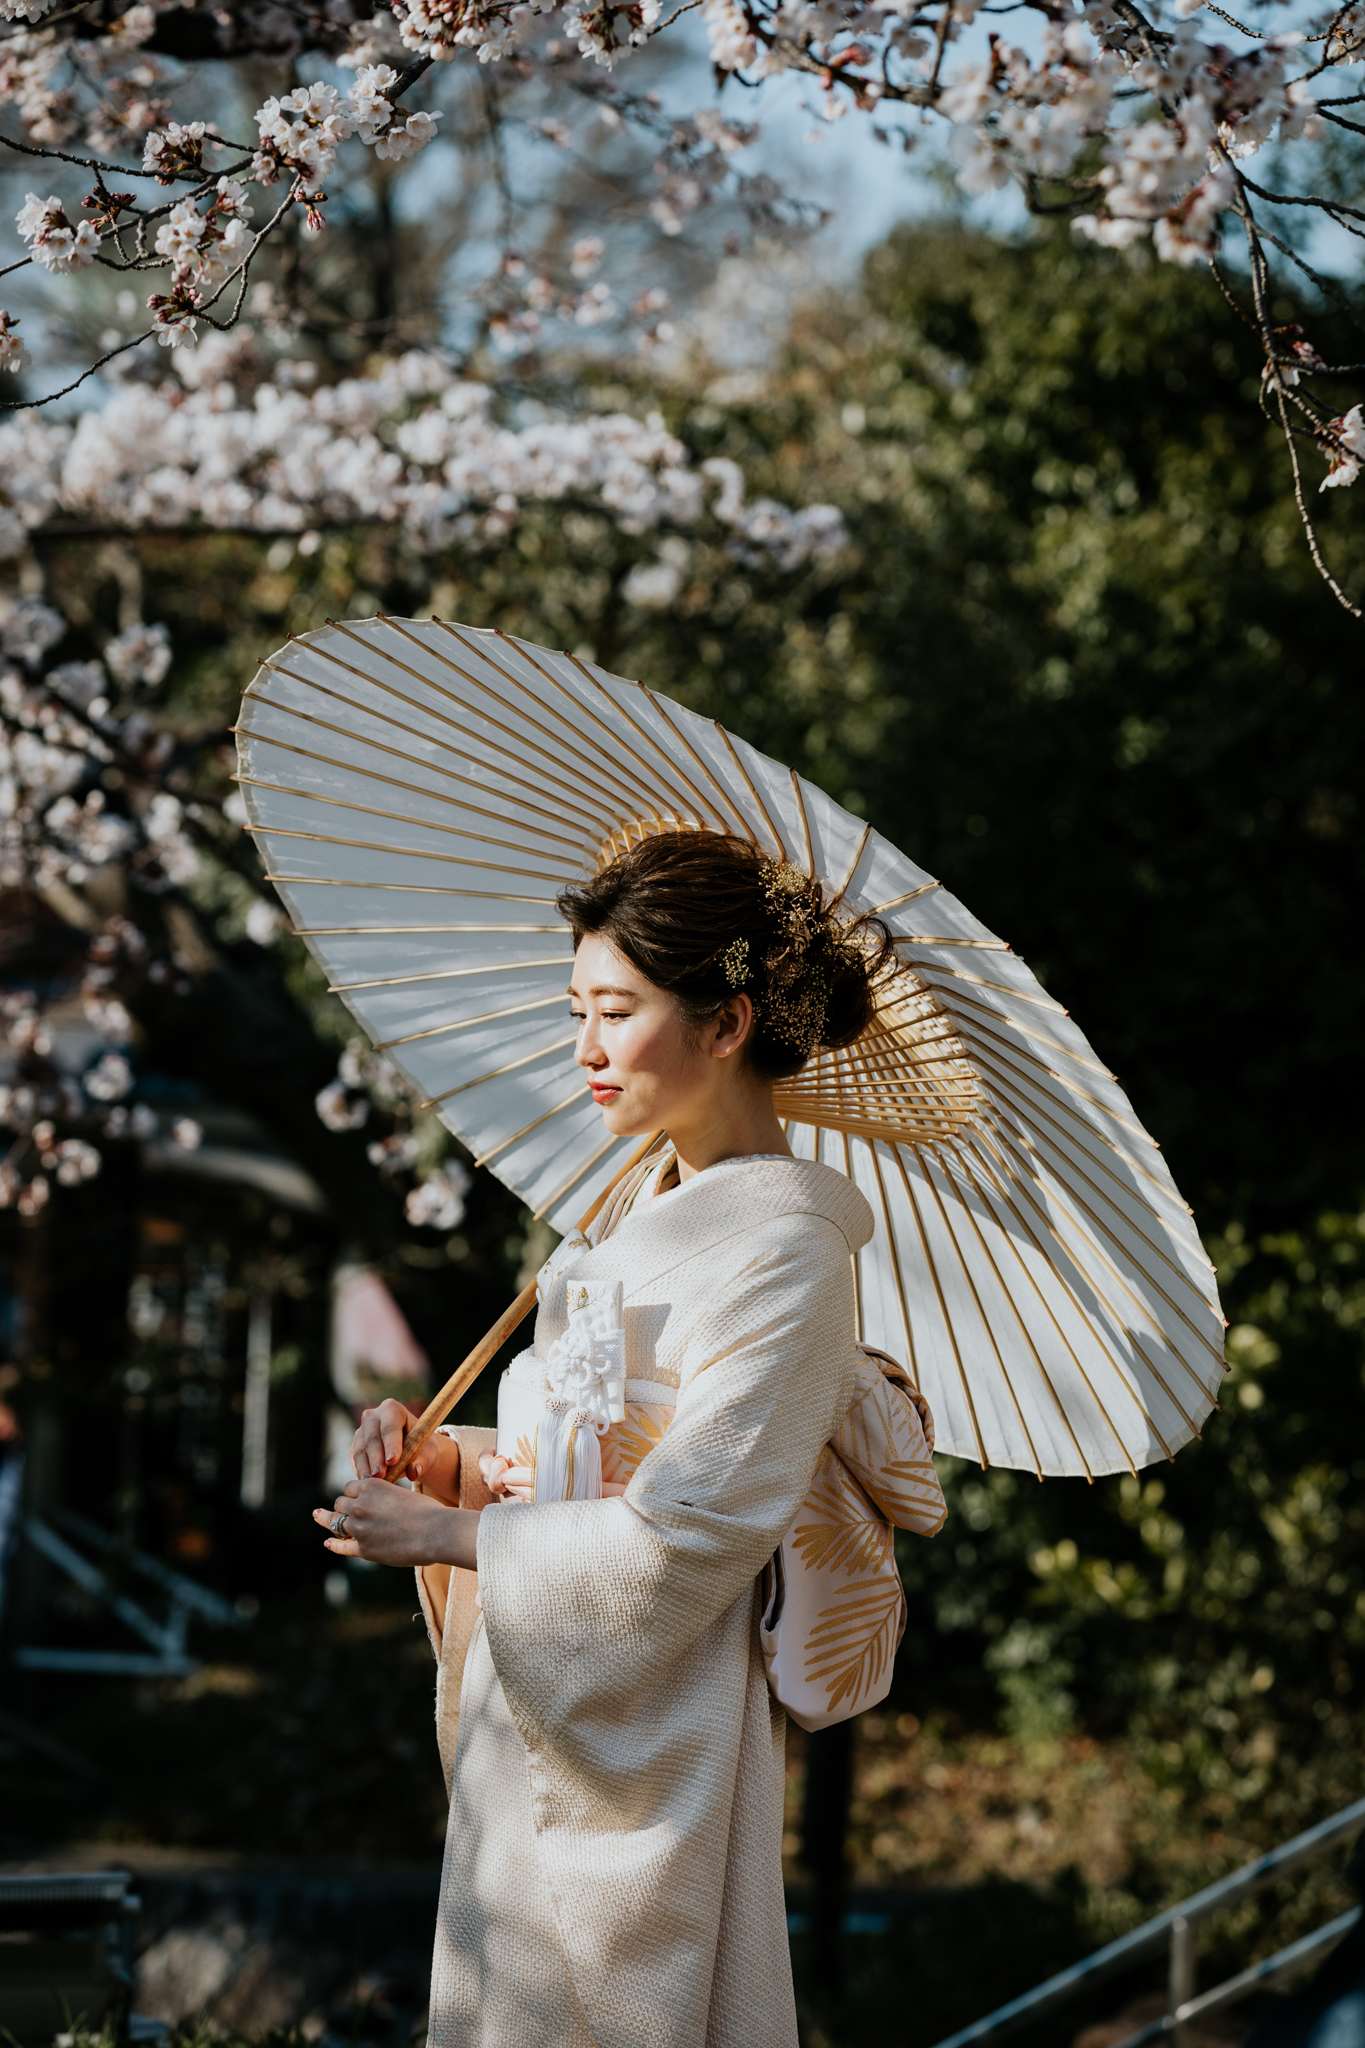 This woman was absolutely captivating; pure elegance. I love the traditional kimono (着物, きもの) she's wearing too.